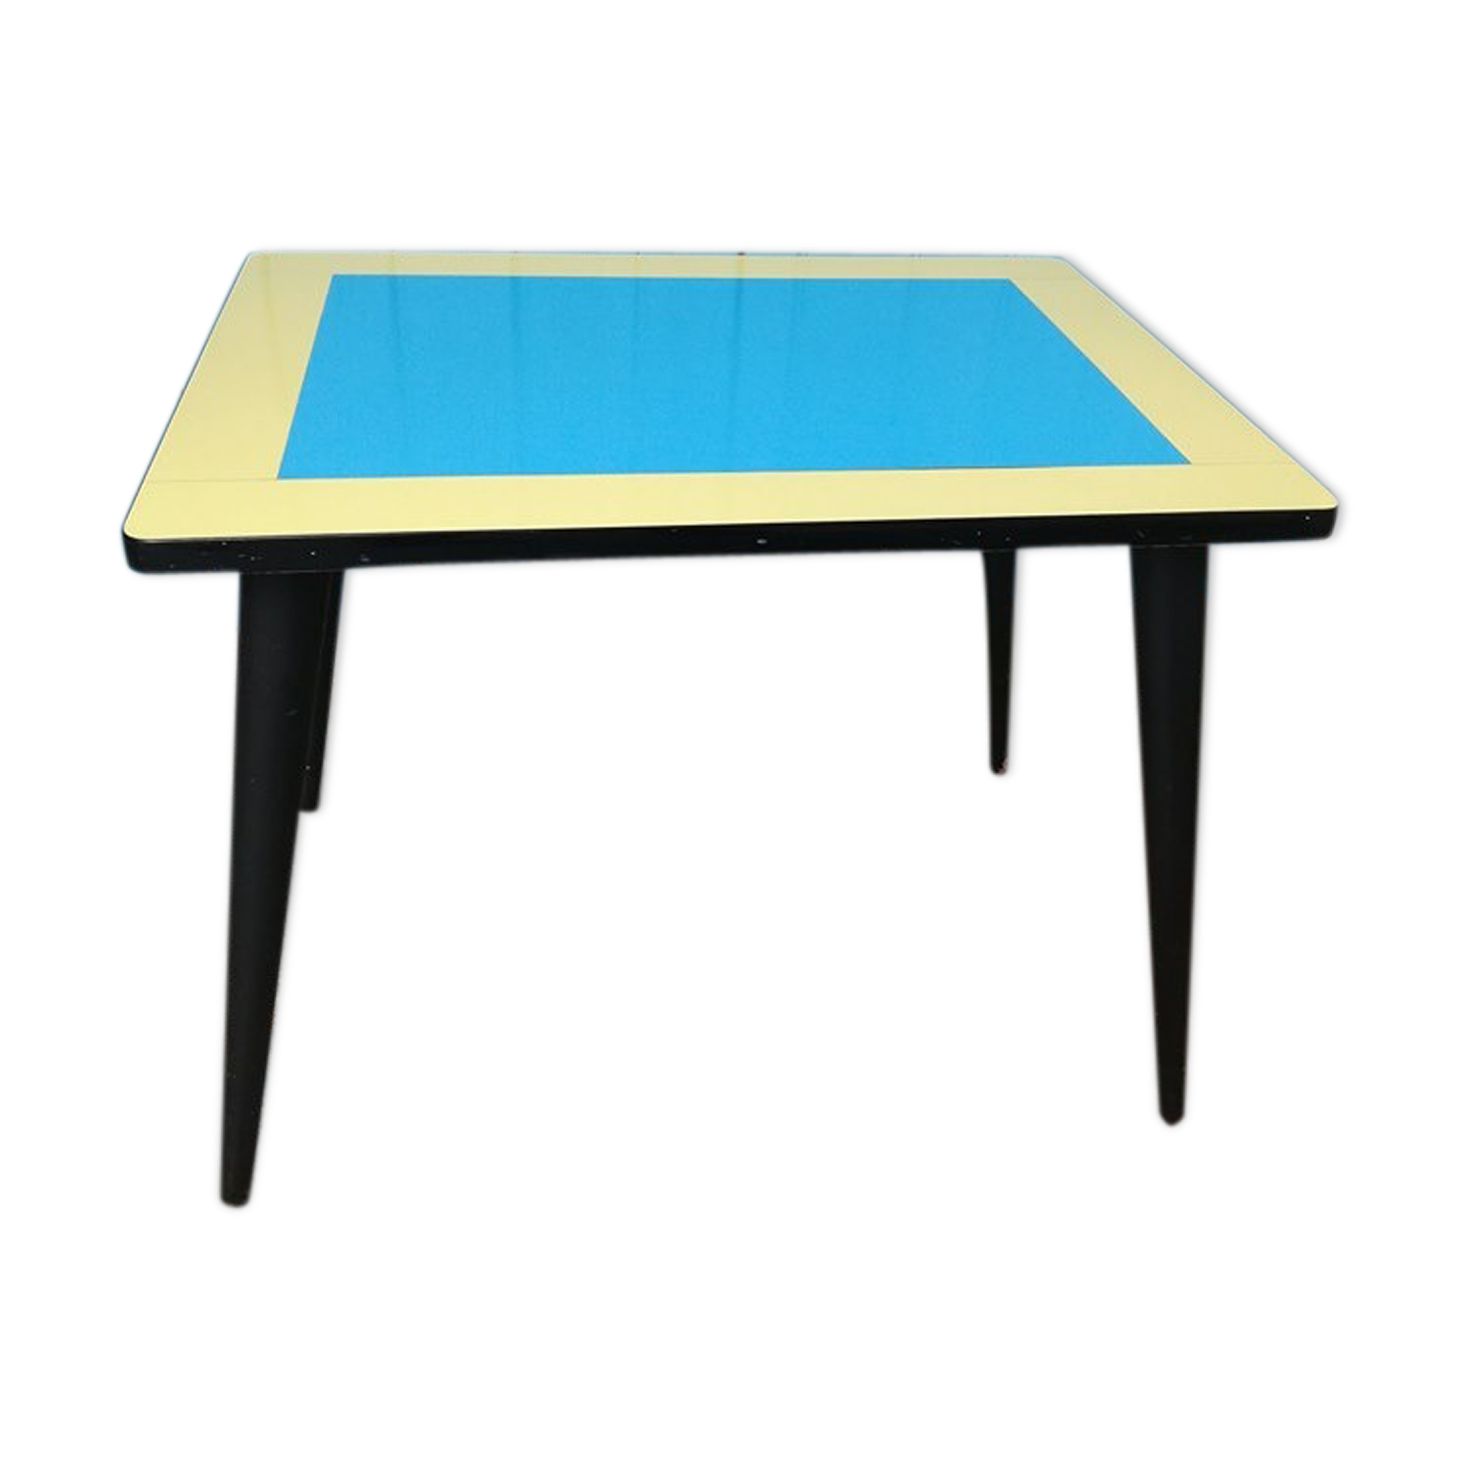 table pliante formica great table pliante en formica vintage annees with table pliante formica. Black Bedroom Furniture Sets. Home Design Ideas